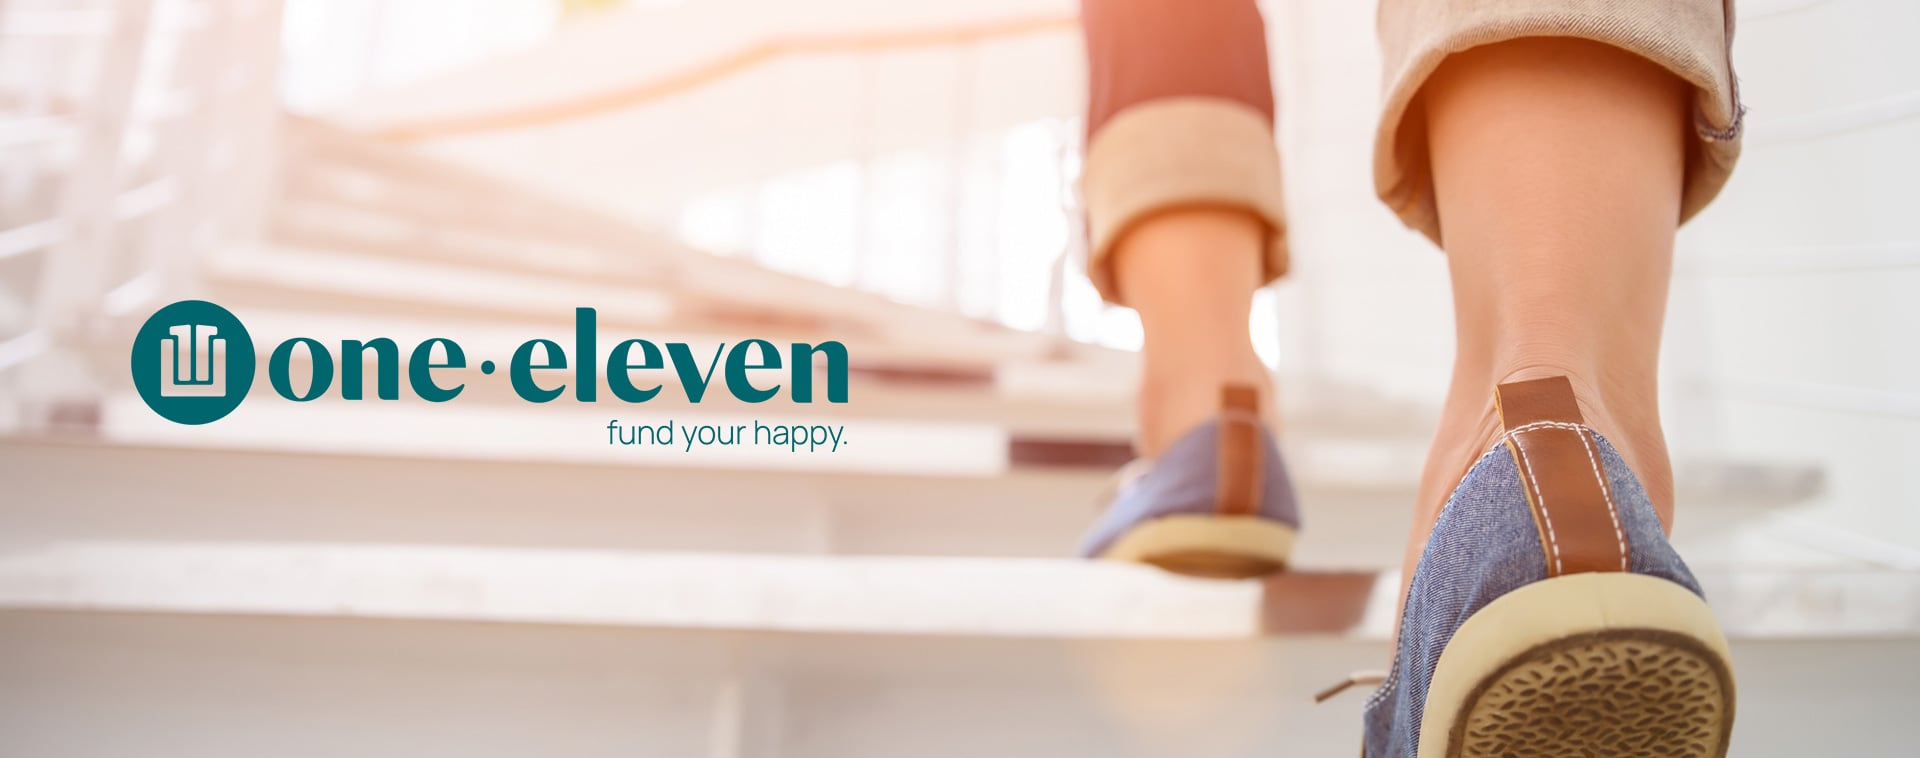 One-Eleven - fund your happy